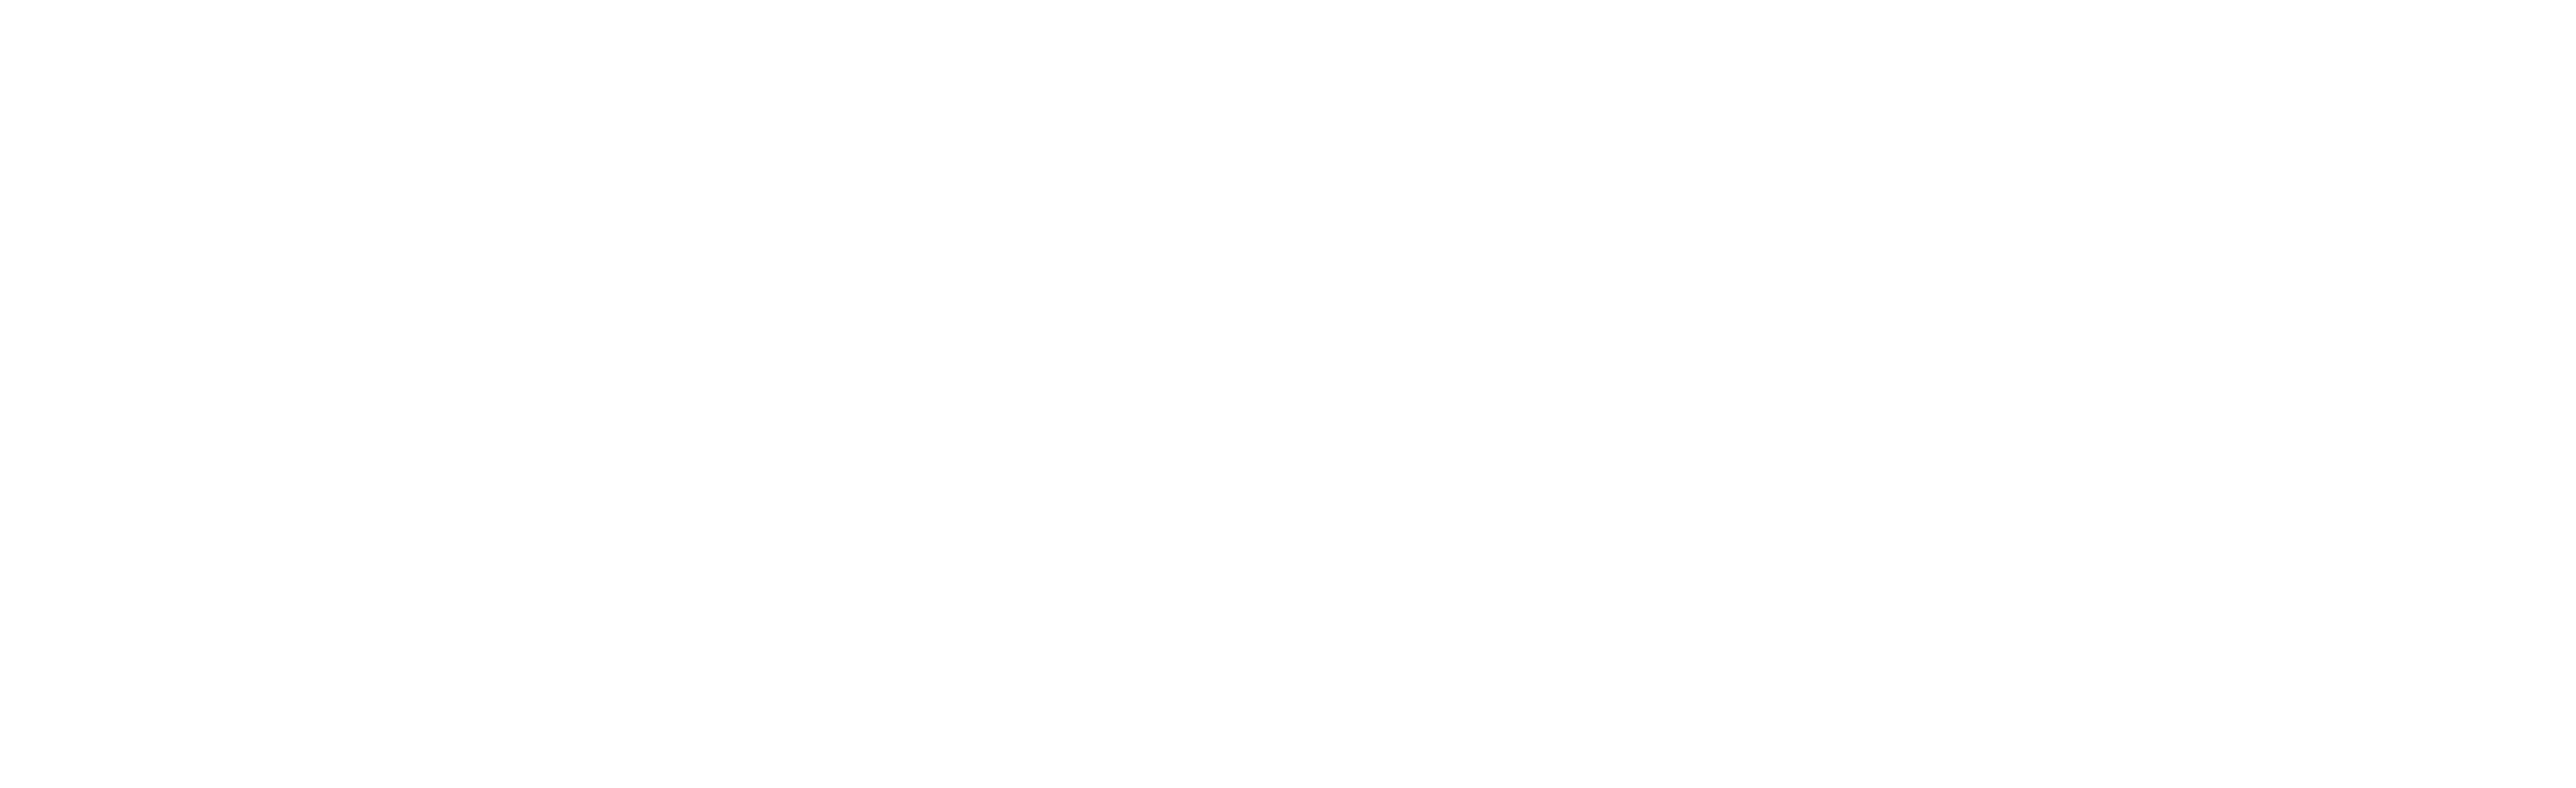 Clear Choice Creative Corp.